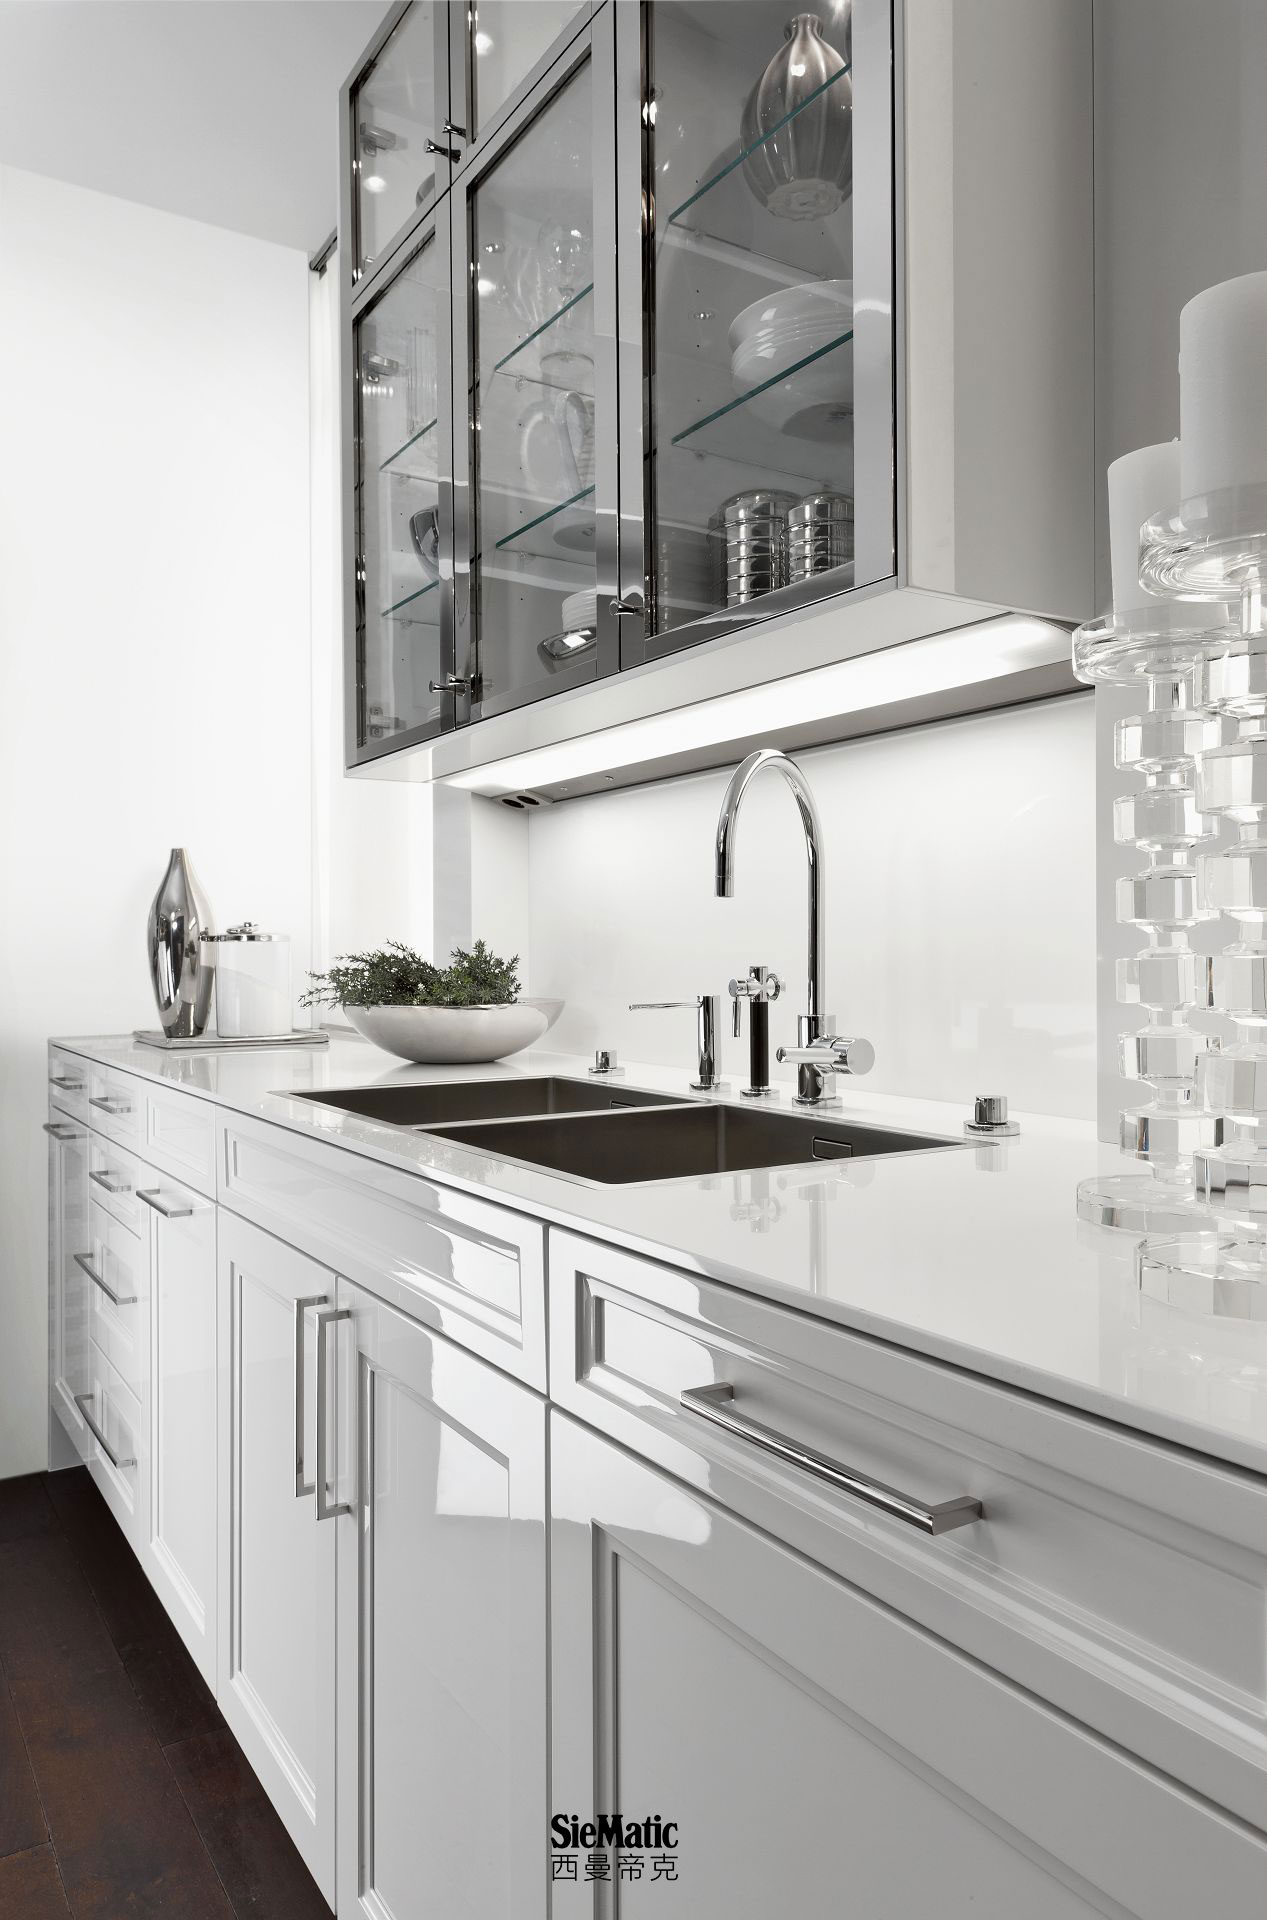 High-quality countertop designs available for classic kitchens of timeless elegance by SieMatic